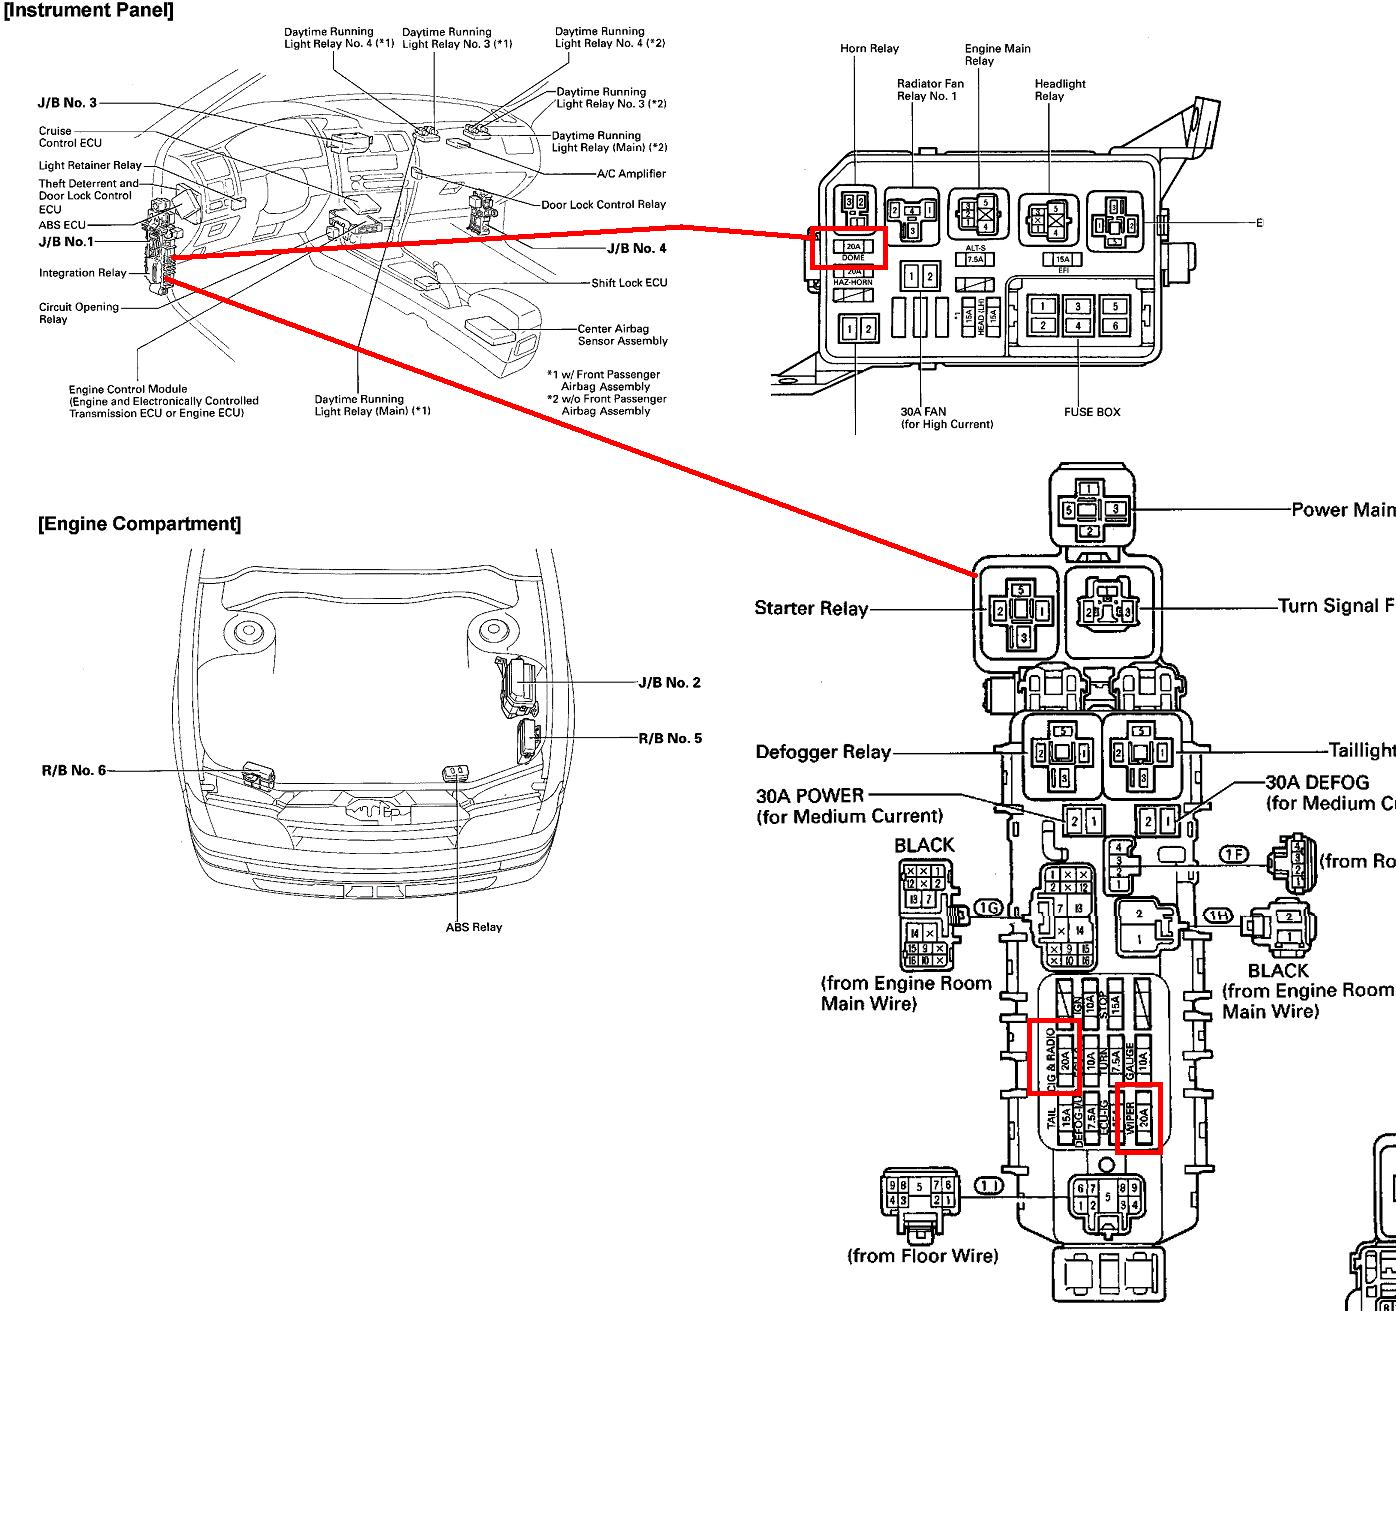 hight resolution of 95 corolla fuse box blog wiring diagram toyota corolla fuse box 2009 95 toyota corolla fuse